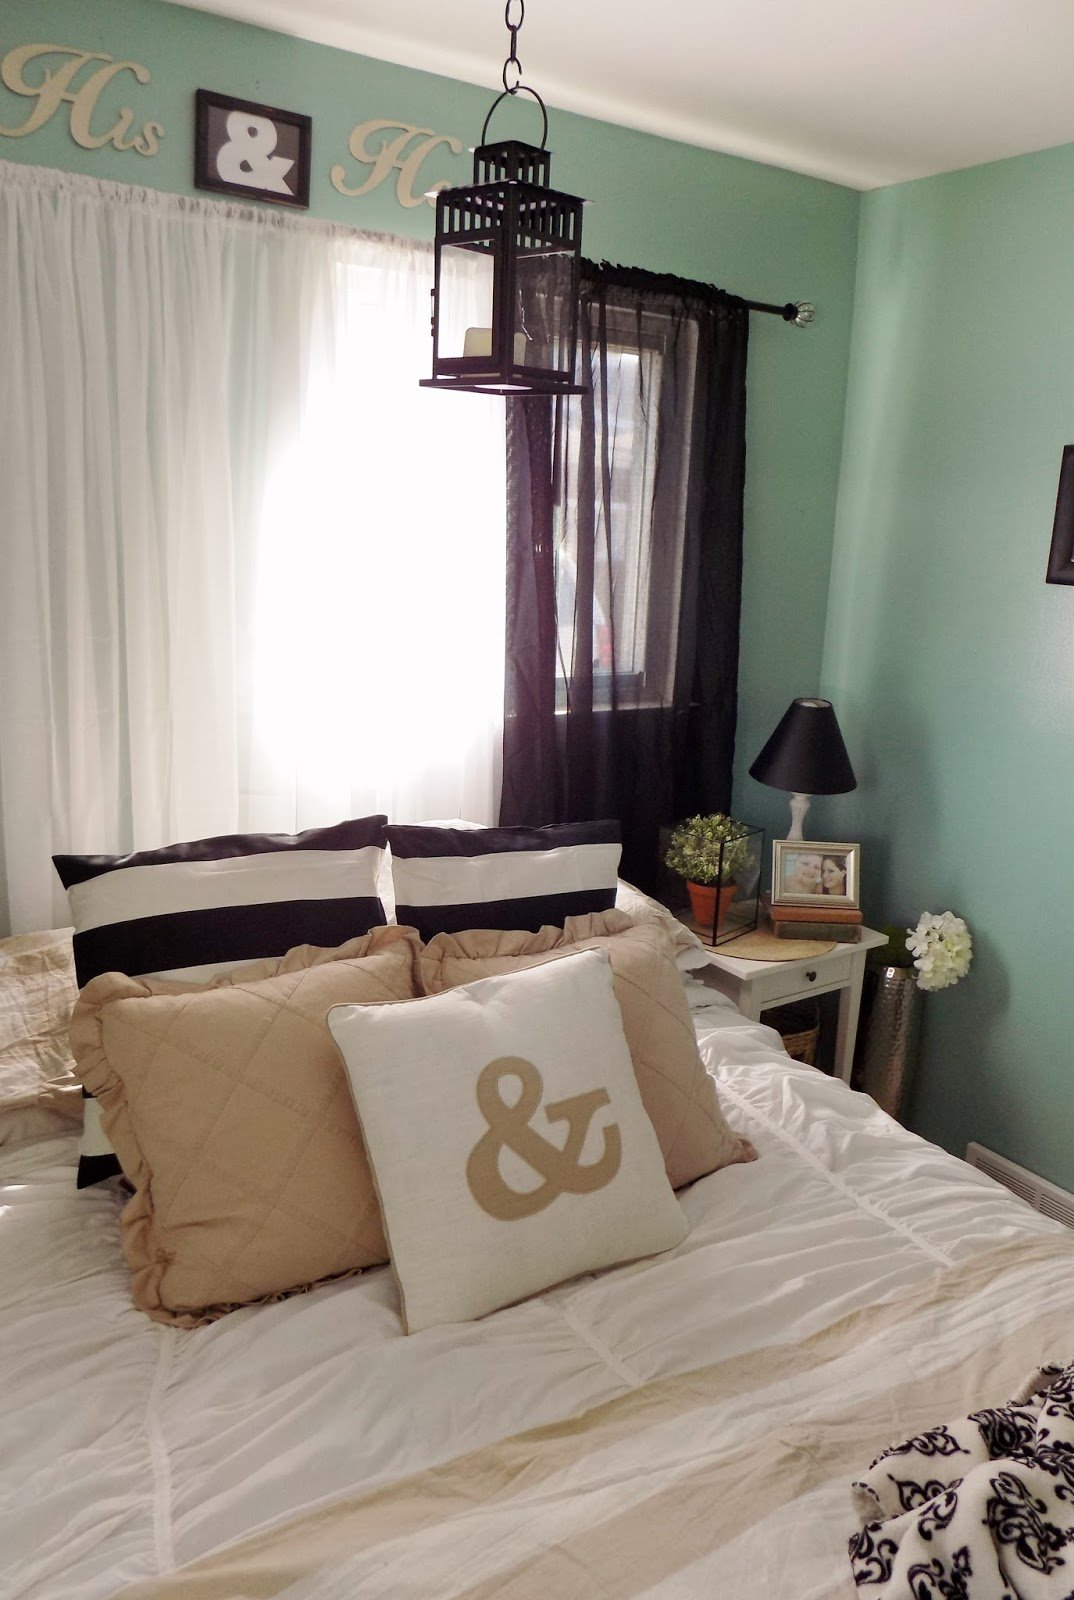 Best The Quaint Sanctuary Rustic Glam Master Bedroom Reveal With Pictures